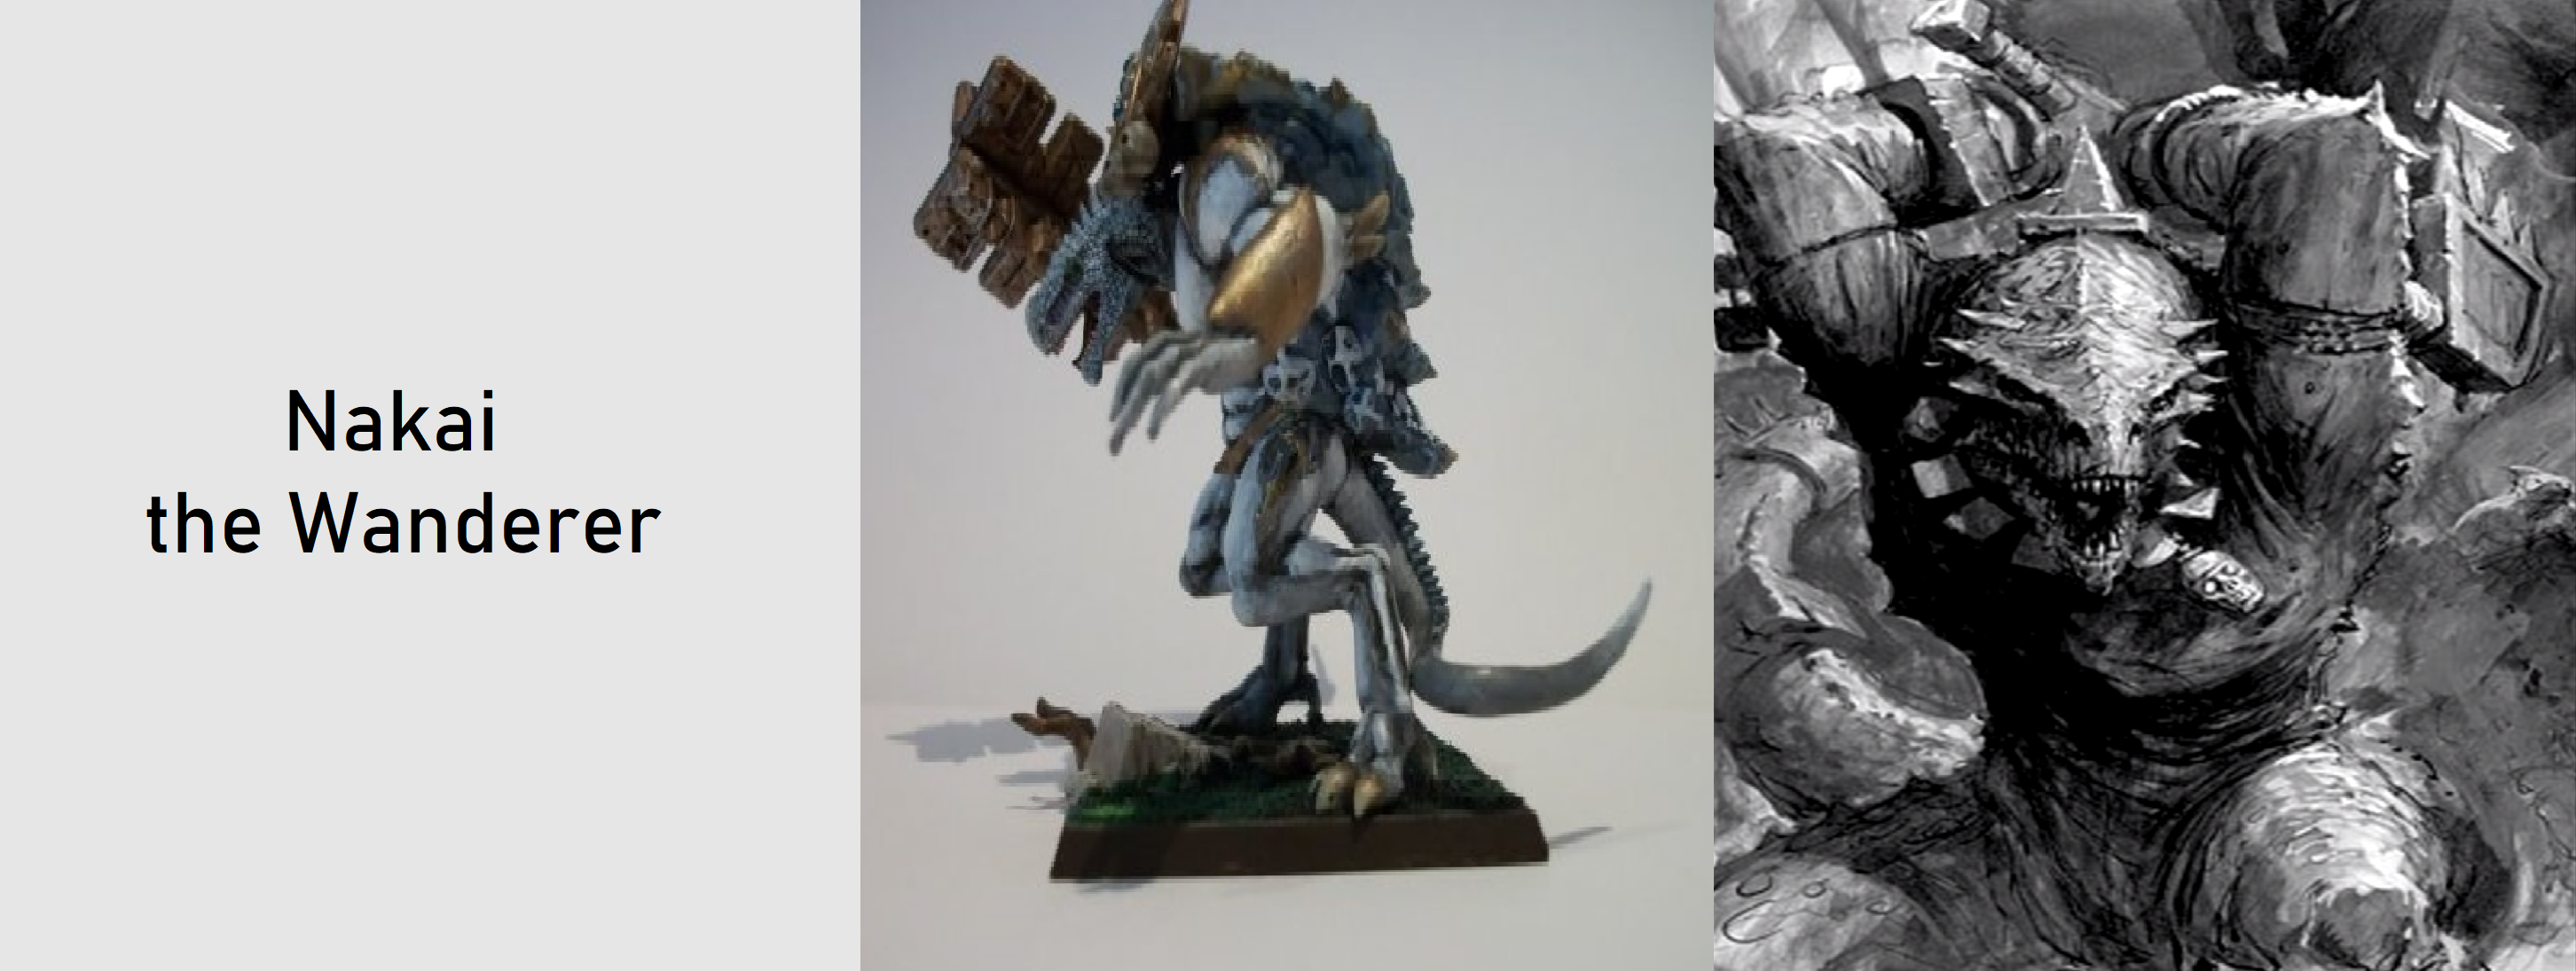 Nakai The Wanderer Figure : I'm currently considering using a reaper reptus model: